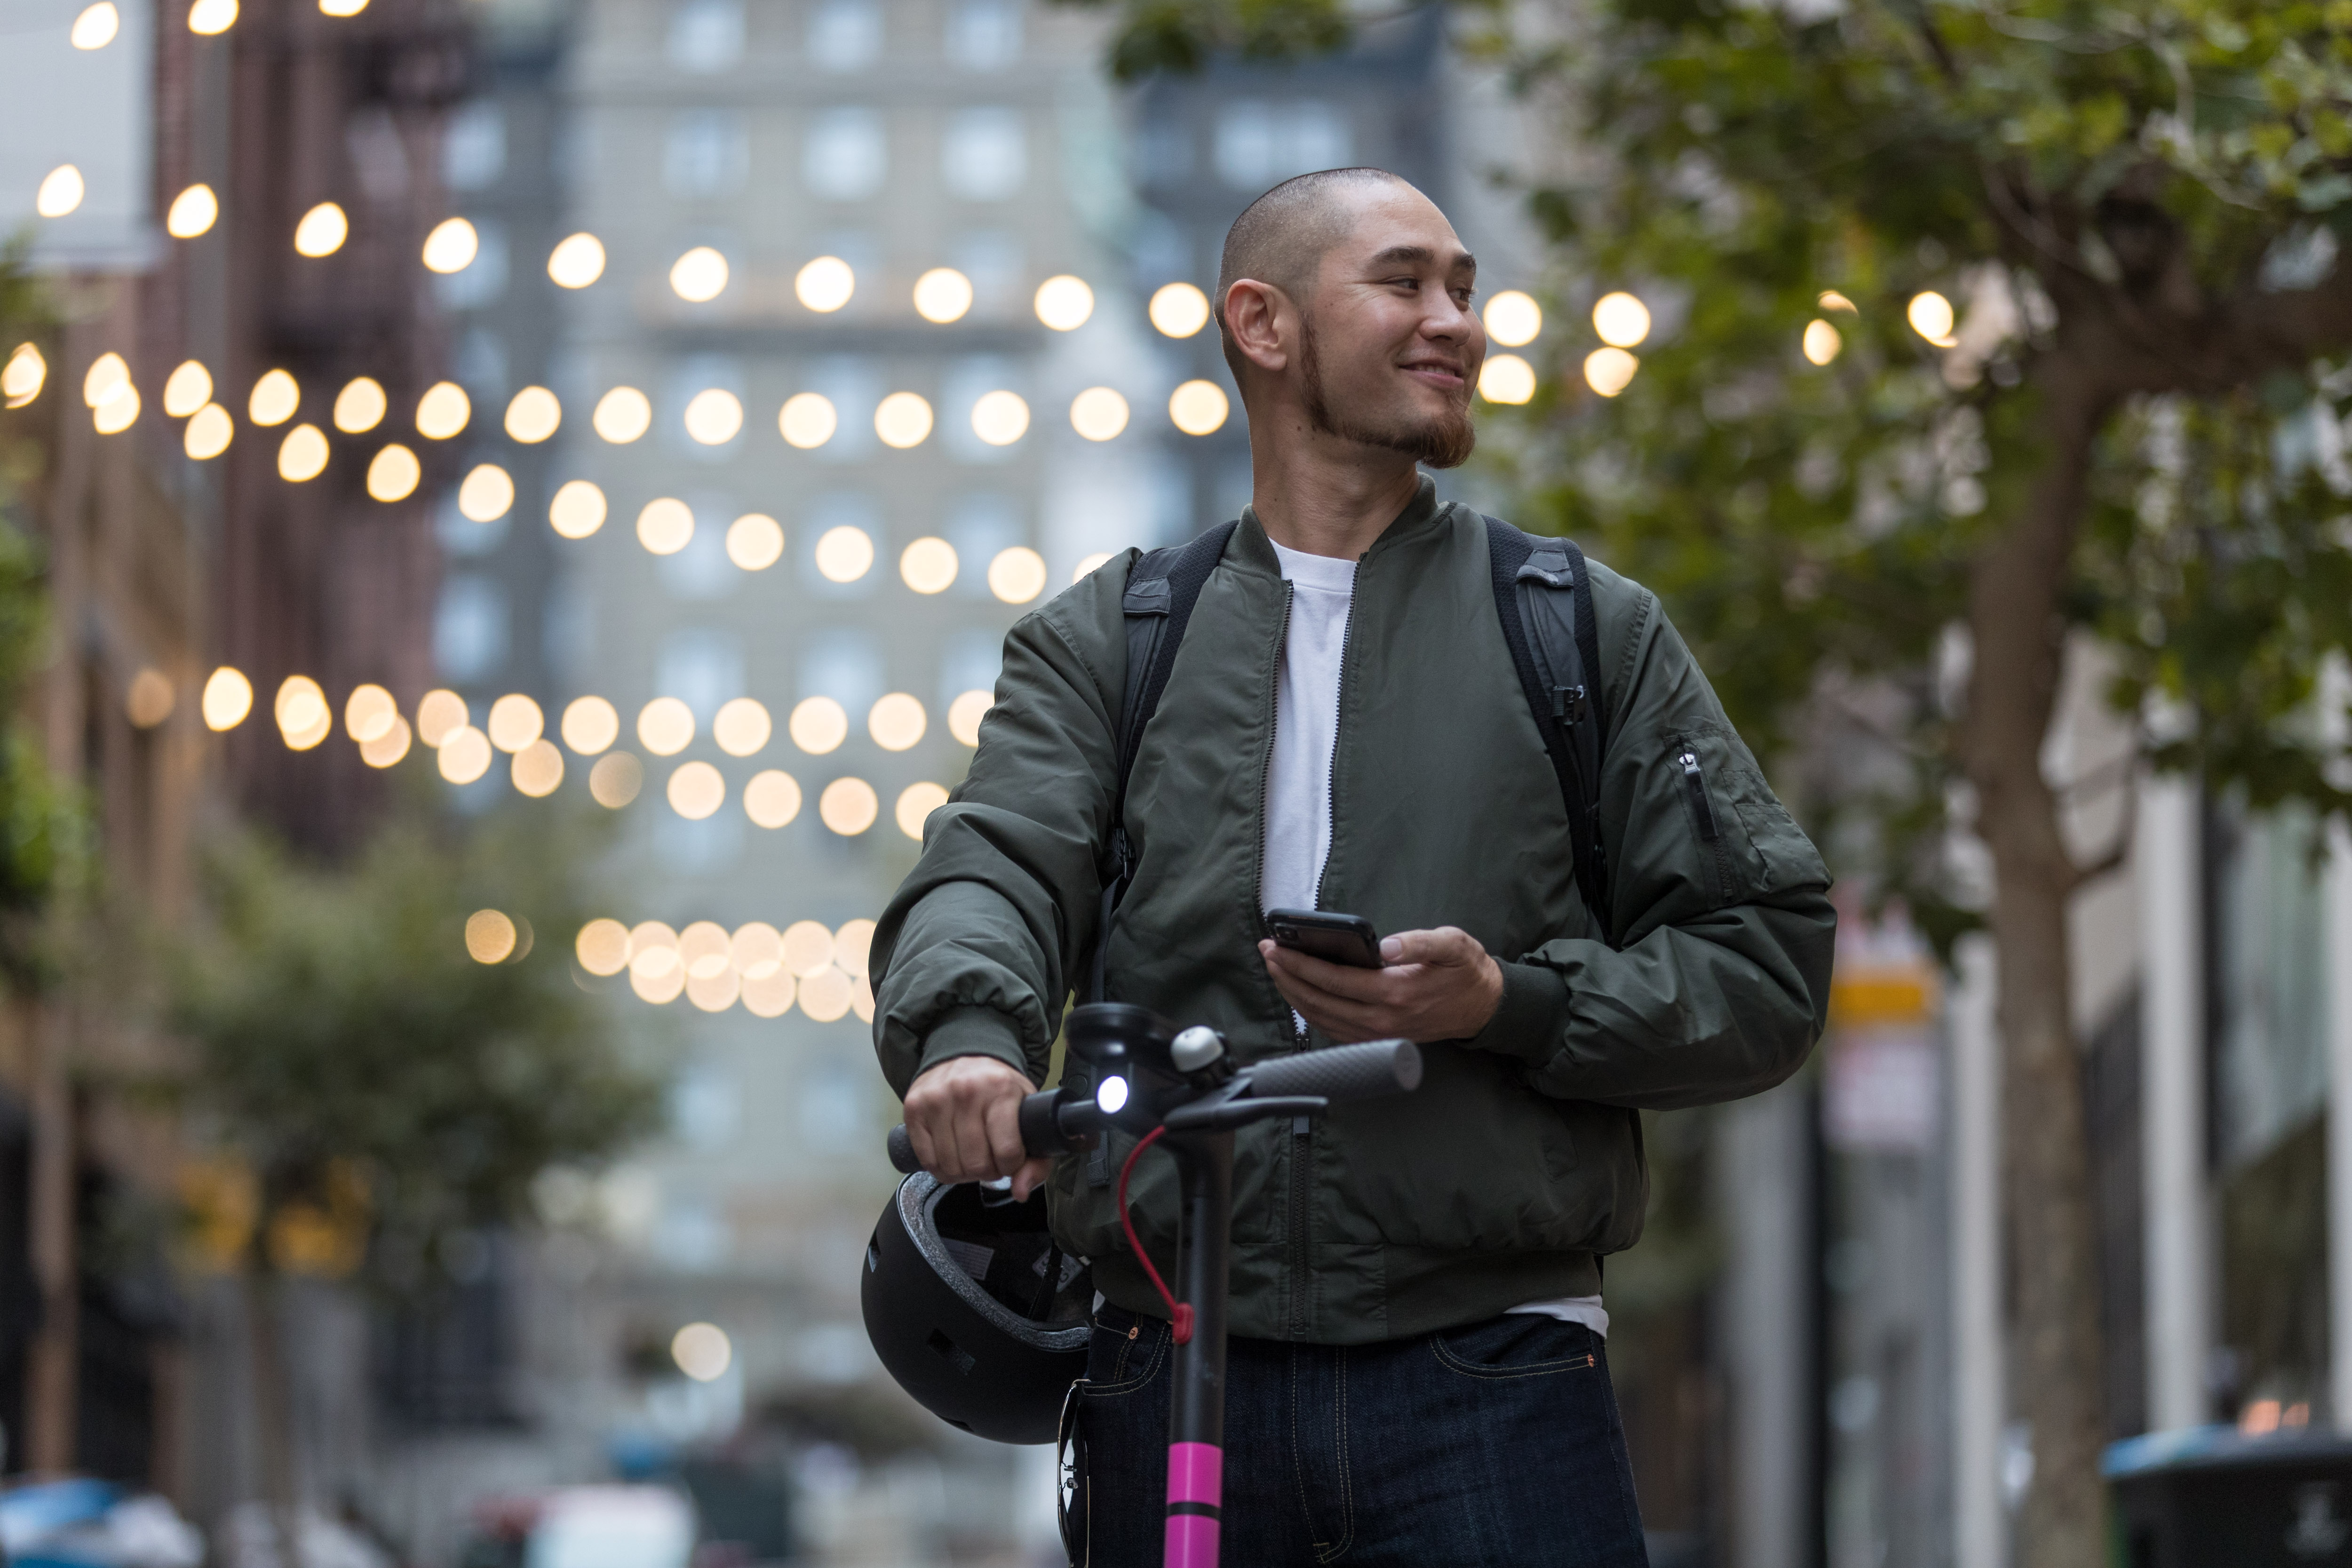 Lyft Scooters previously launched in Denver and Santa Monica, but D.C. will mark the first East Coast launch. (Image: Courtesy Lyft)